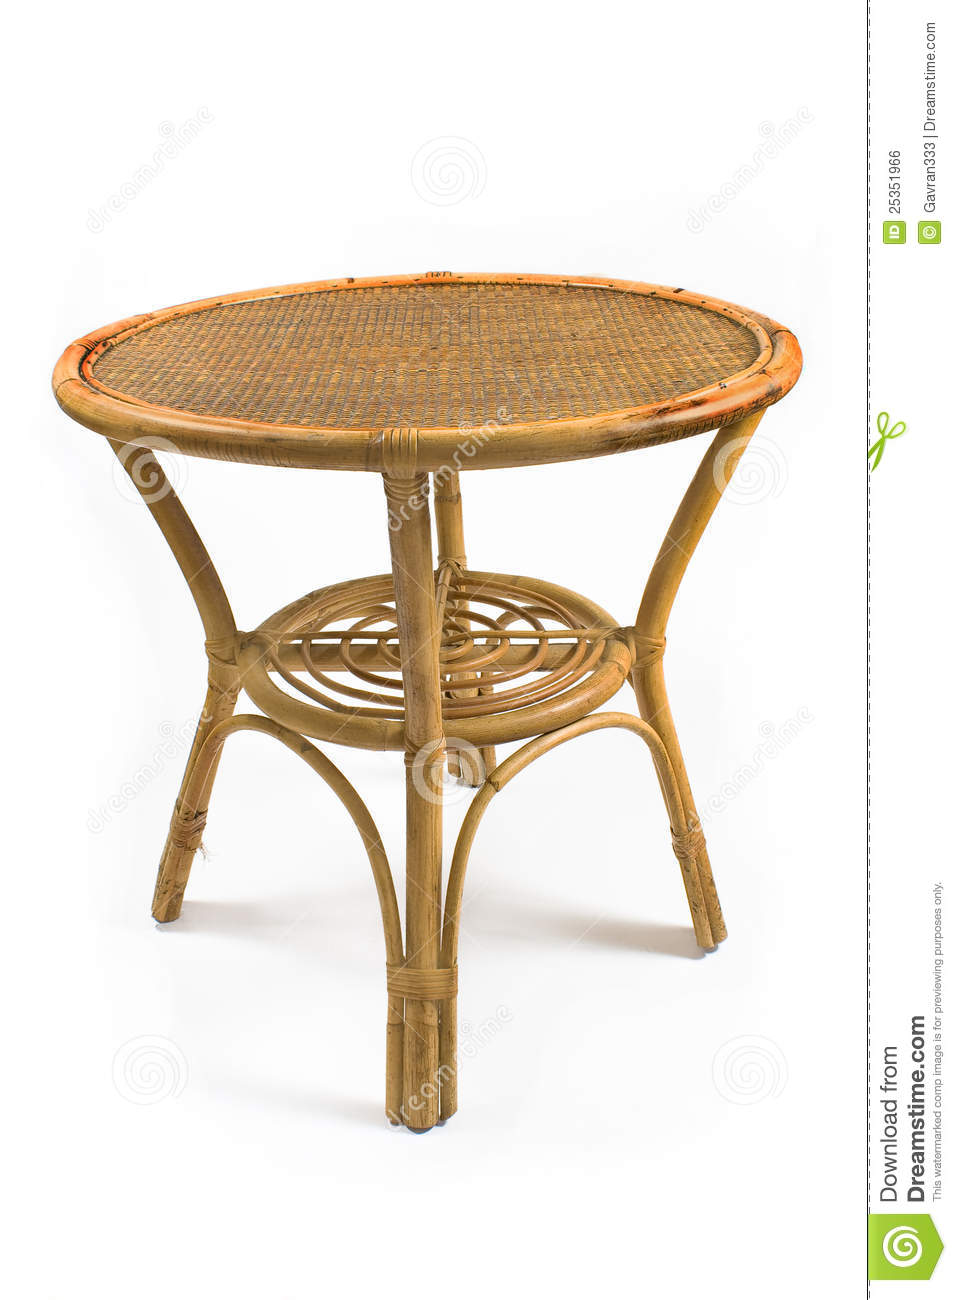 Rattan table stock photo. Image of estate, furniture ...